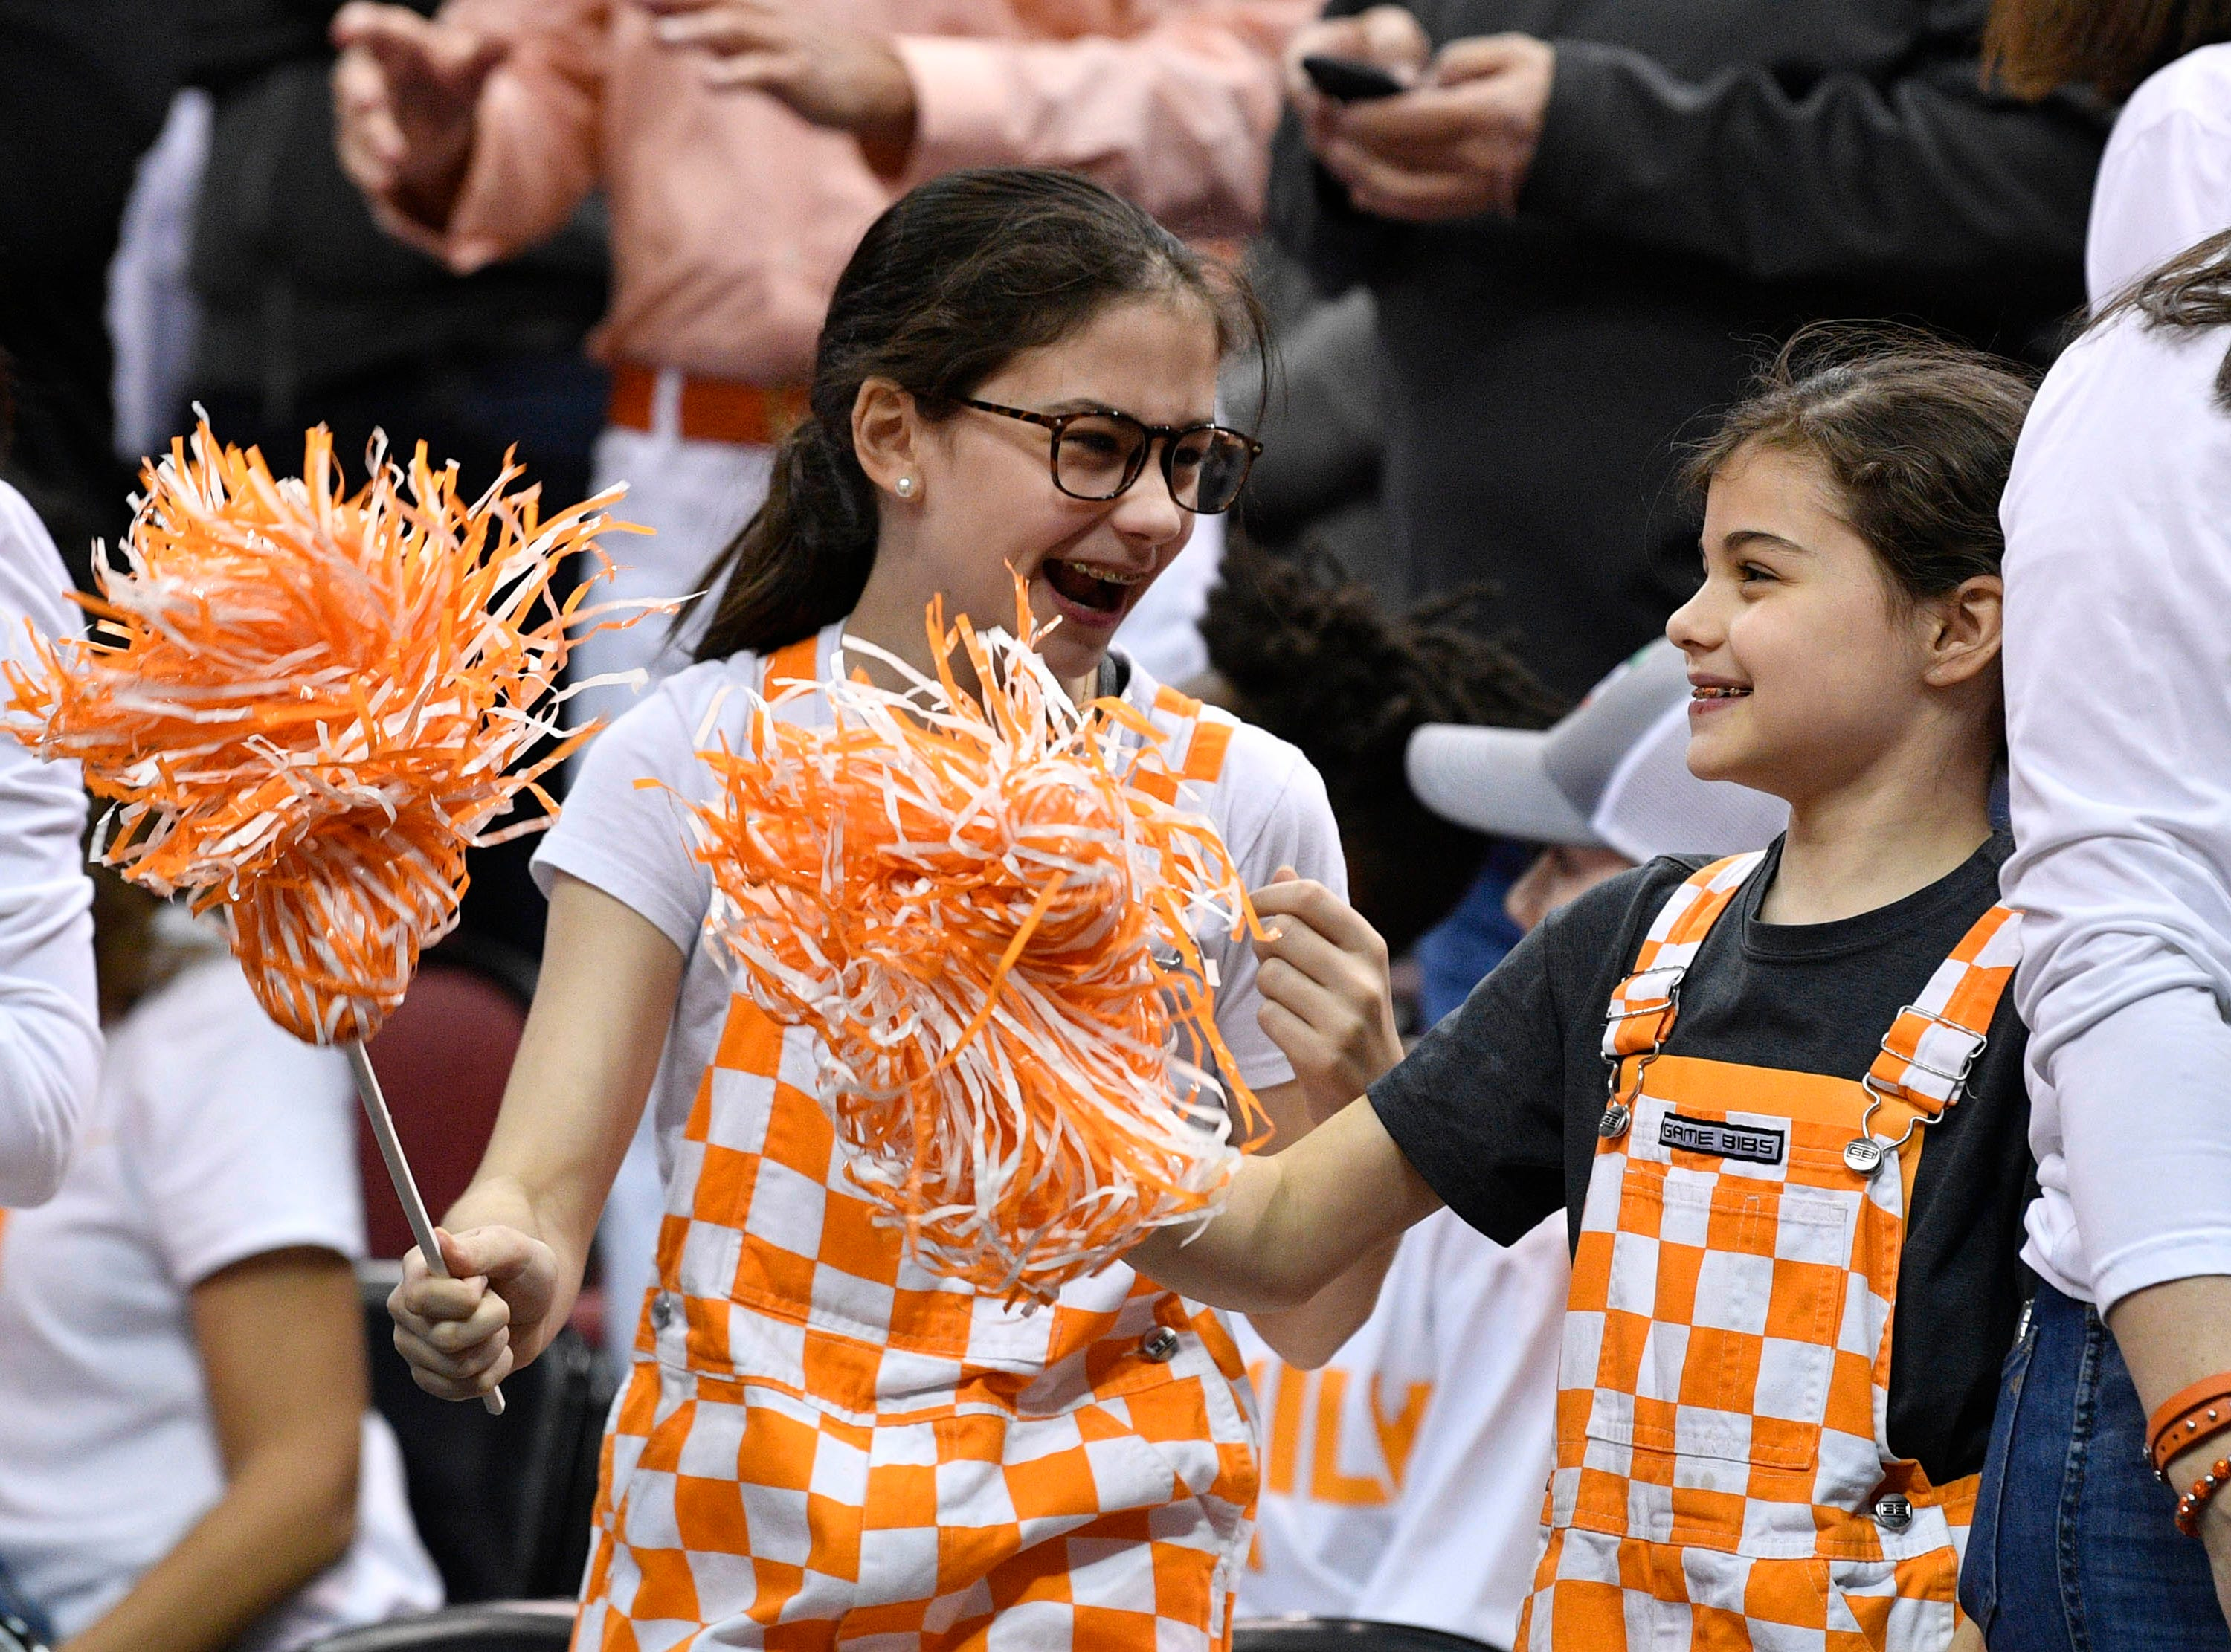 Mar 28, 2019; Louisville, KY, United States; Tennessee Volunteers fans cheer before the game against the Purdue Boilermakers in the semifinals of the south regional of the 2019 NCAA Tournament at KFC Yum Center. Mandatory Credit: Jamie Rhodes-USA TODAY Sports